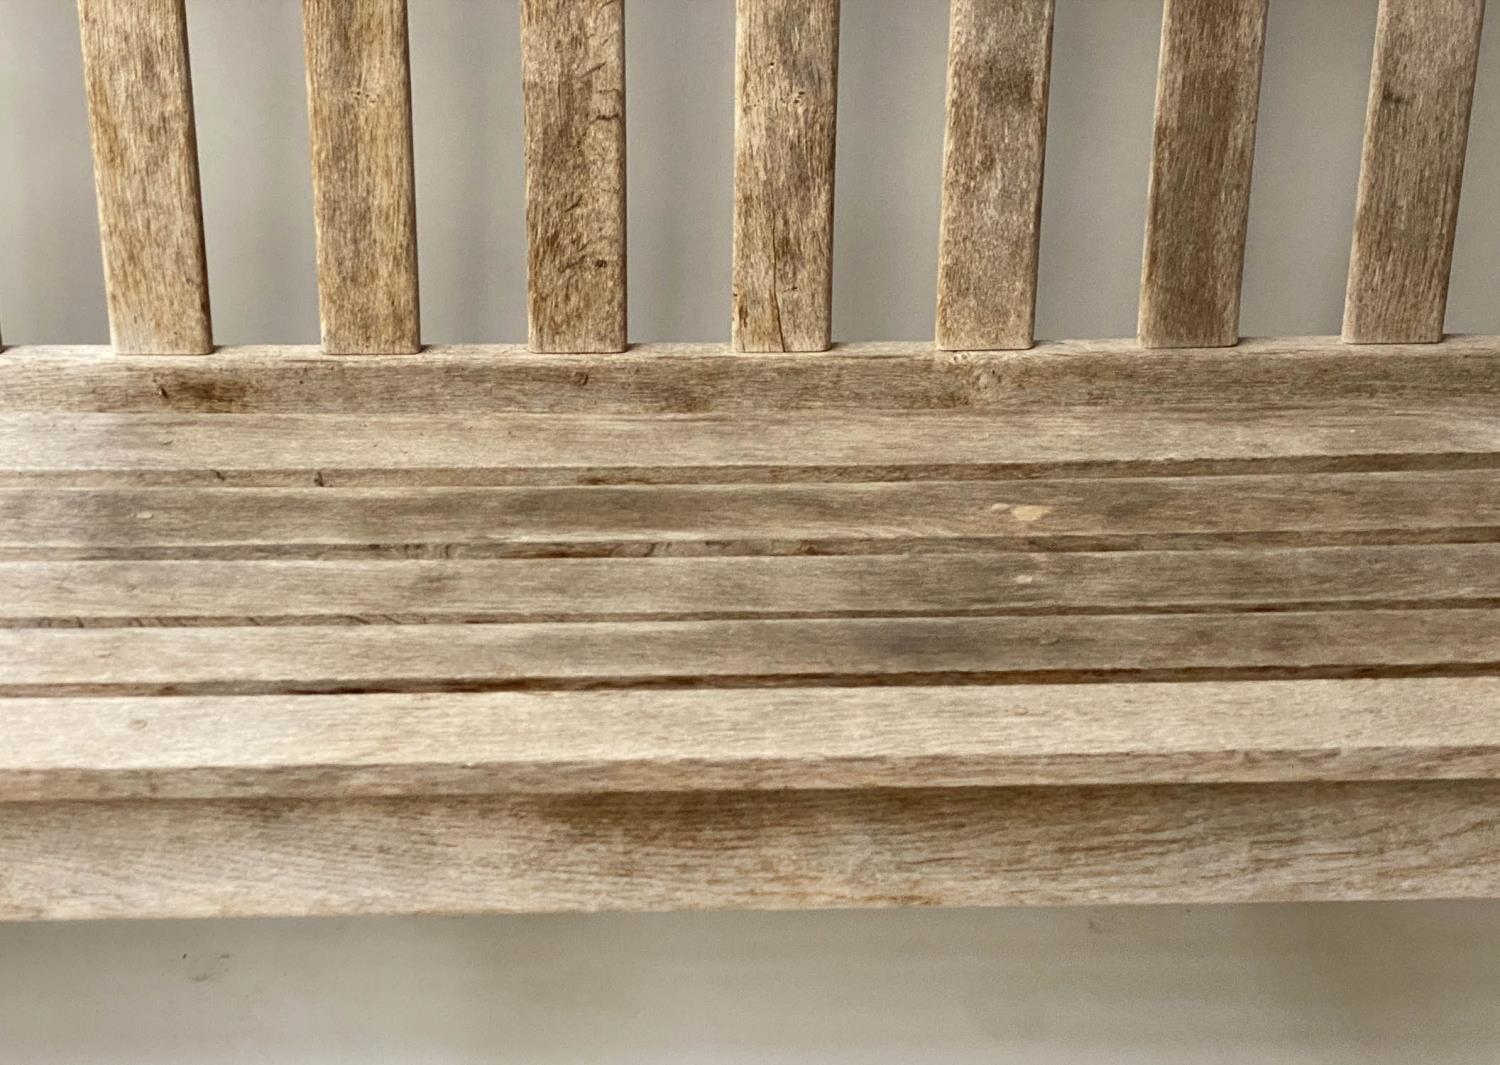 ENGLISH GARDEN BENCH, weathered English oak of substantial and slatted construction, 168cm W. - Image 6 of 8